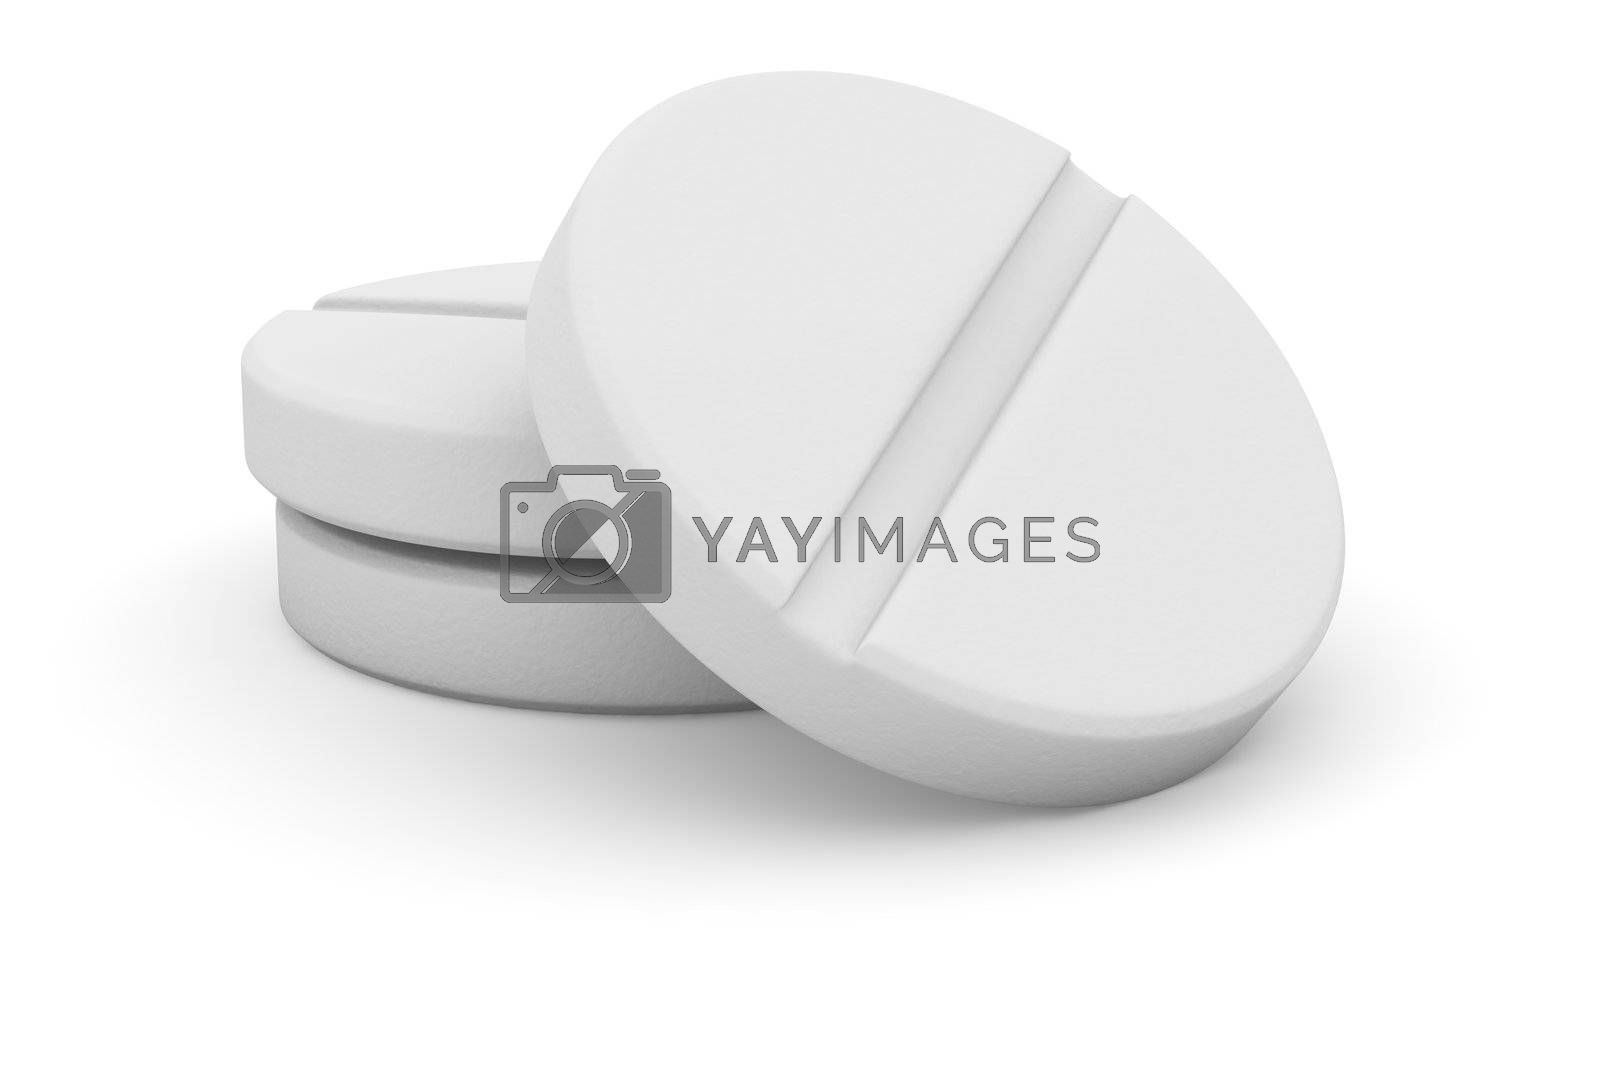 Three tablets of round shape